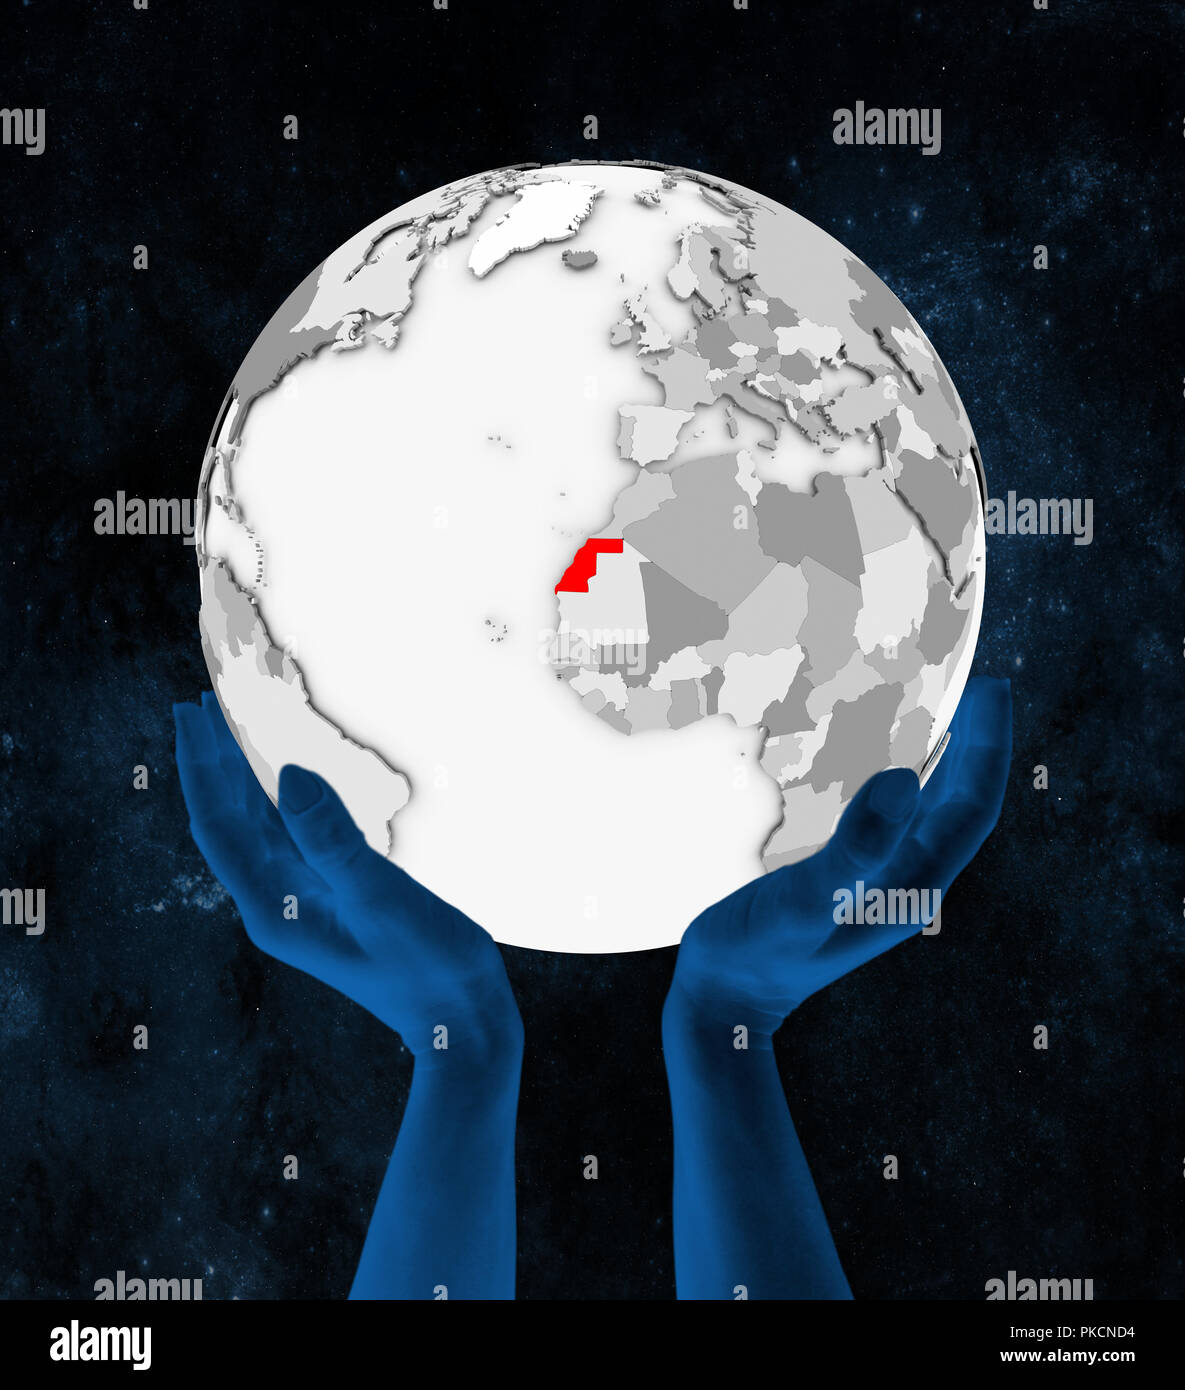 Western Sahara In red on white globe held in hands in space. 3D illustration. - Stock Image